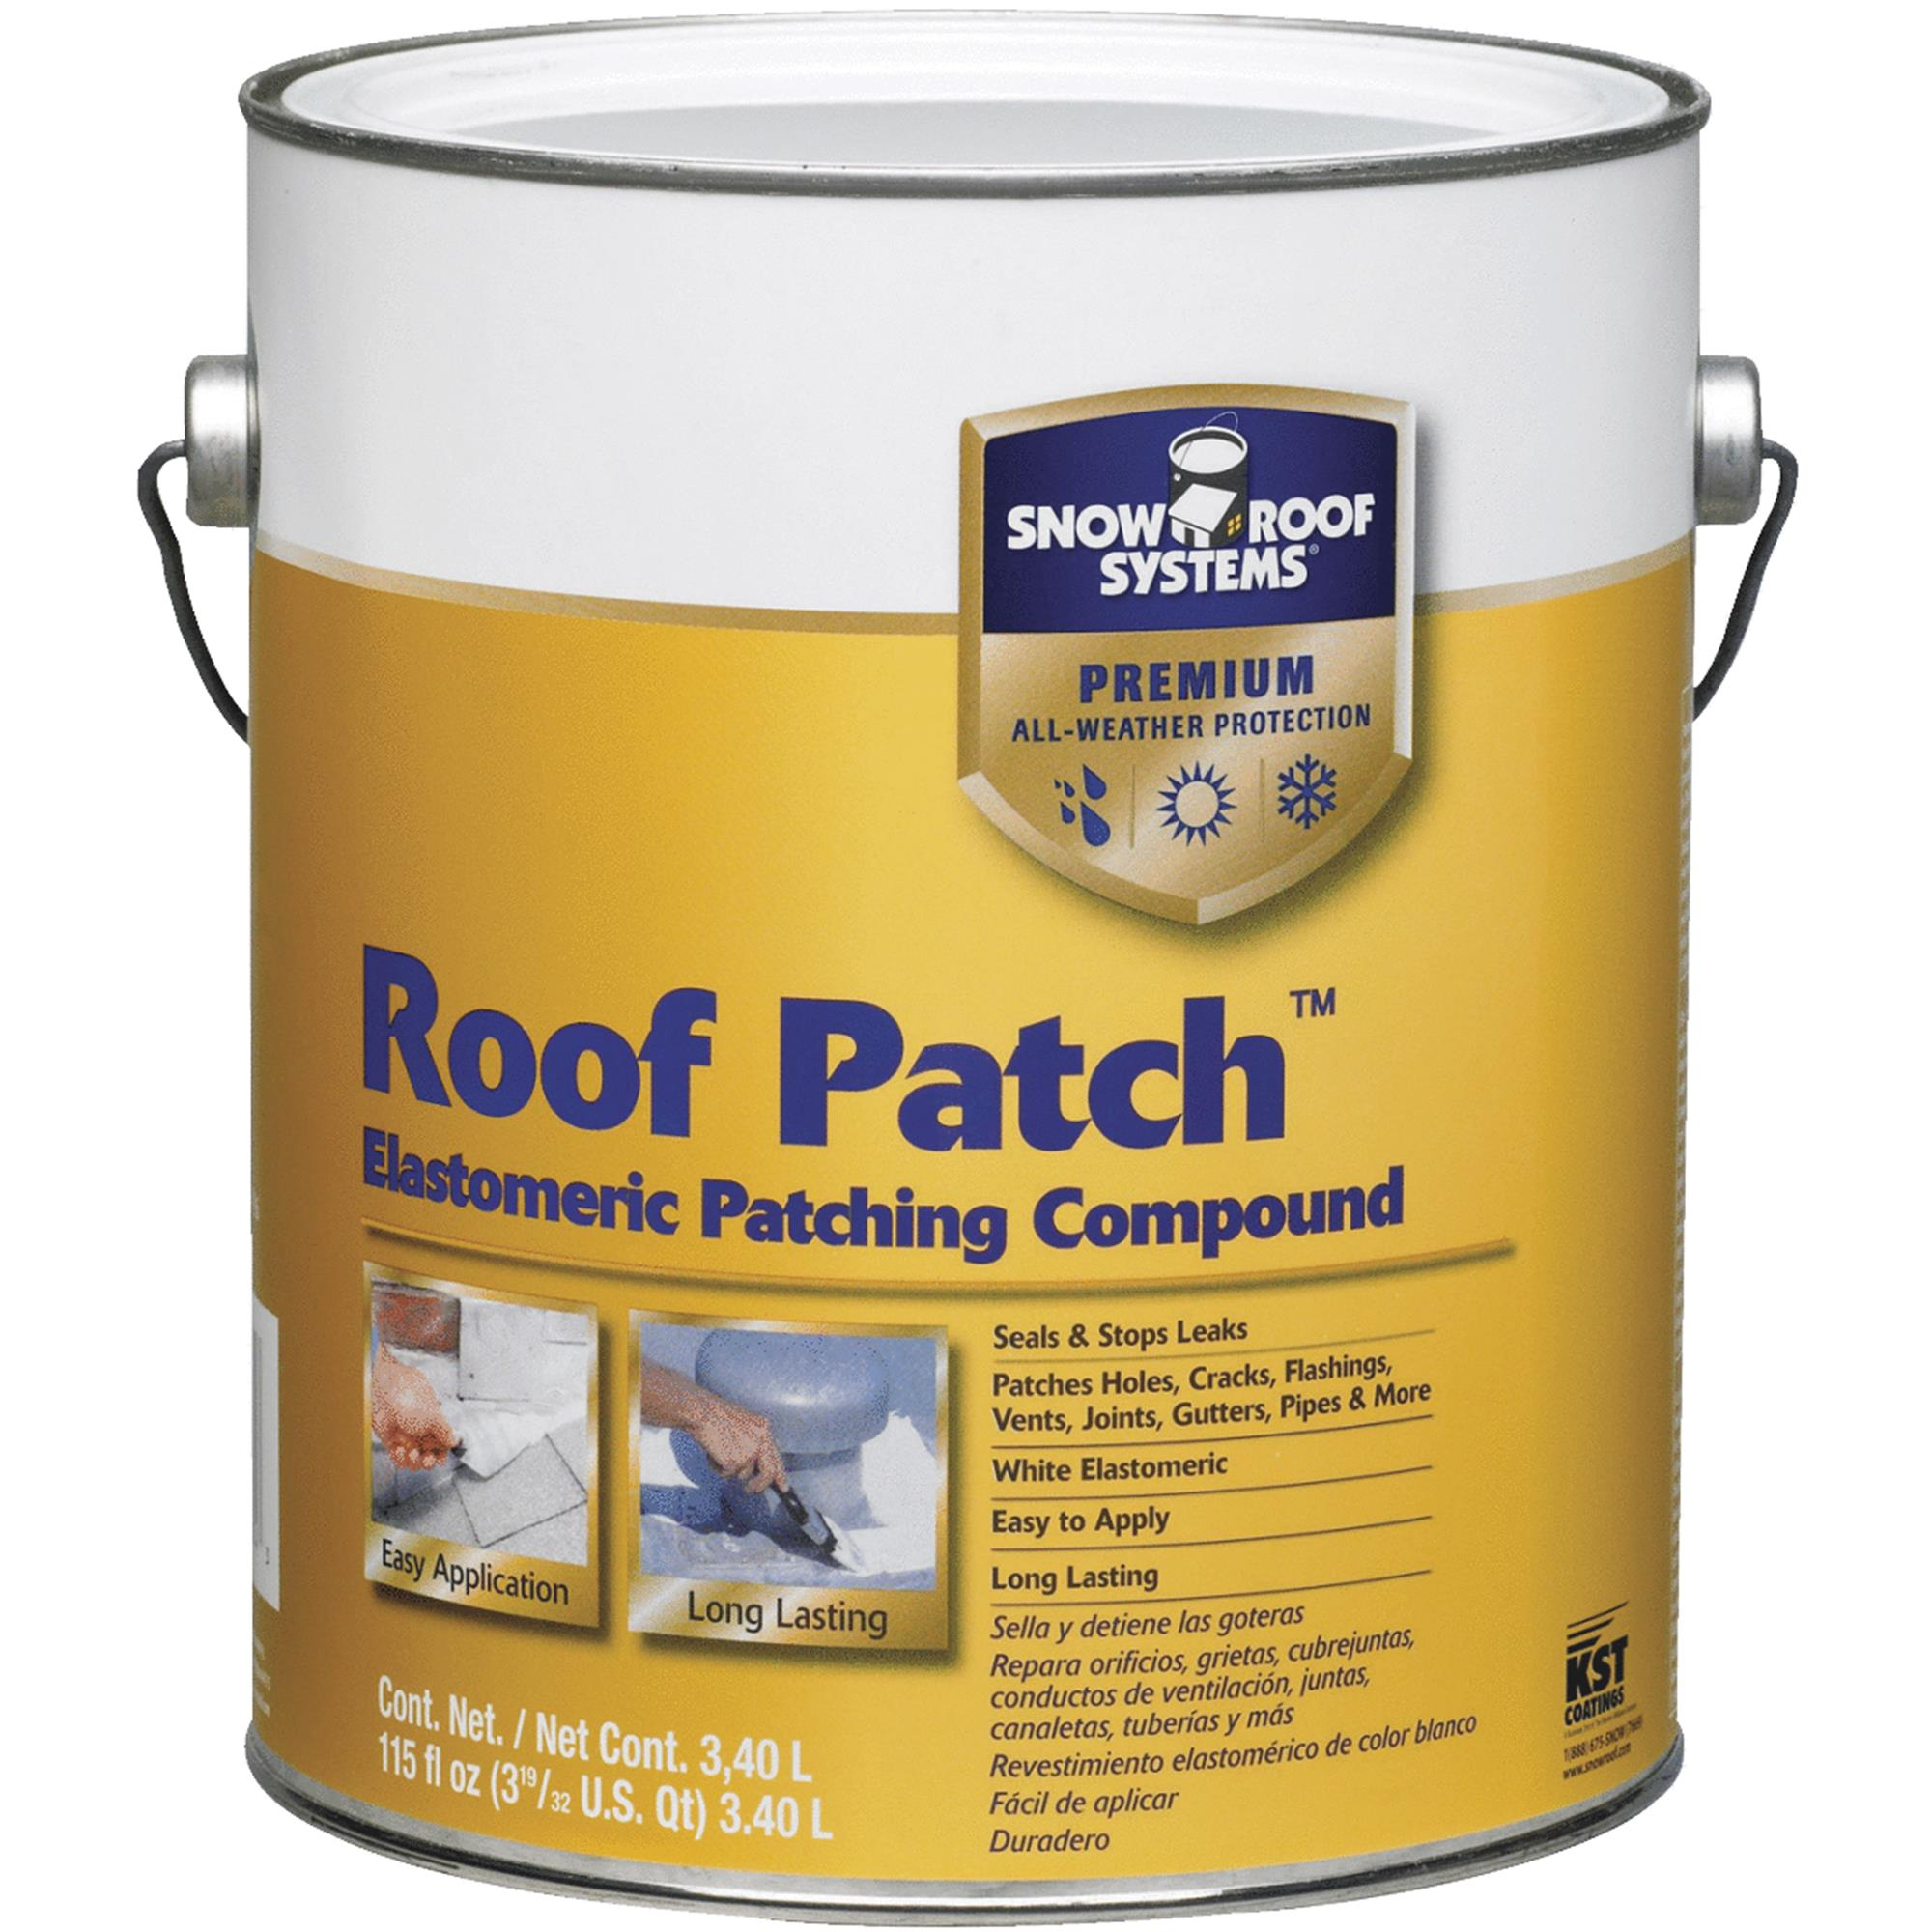 Roof Patch Elastomeric Patching Compound